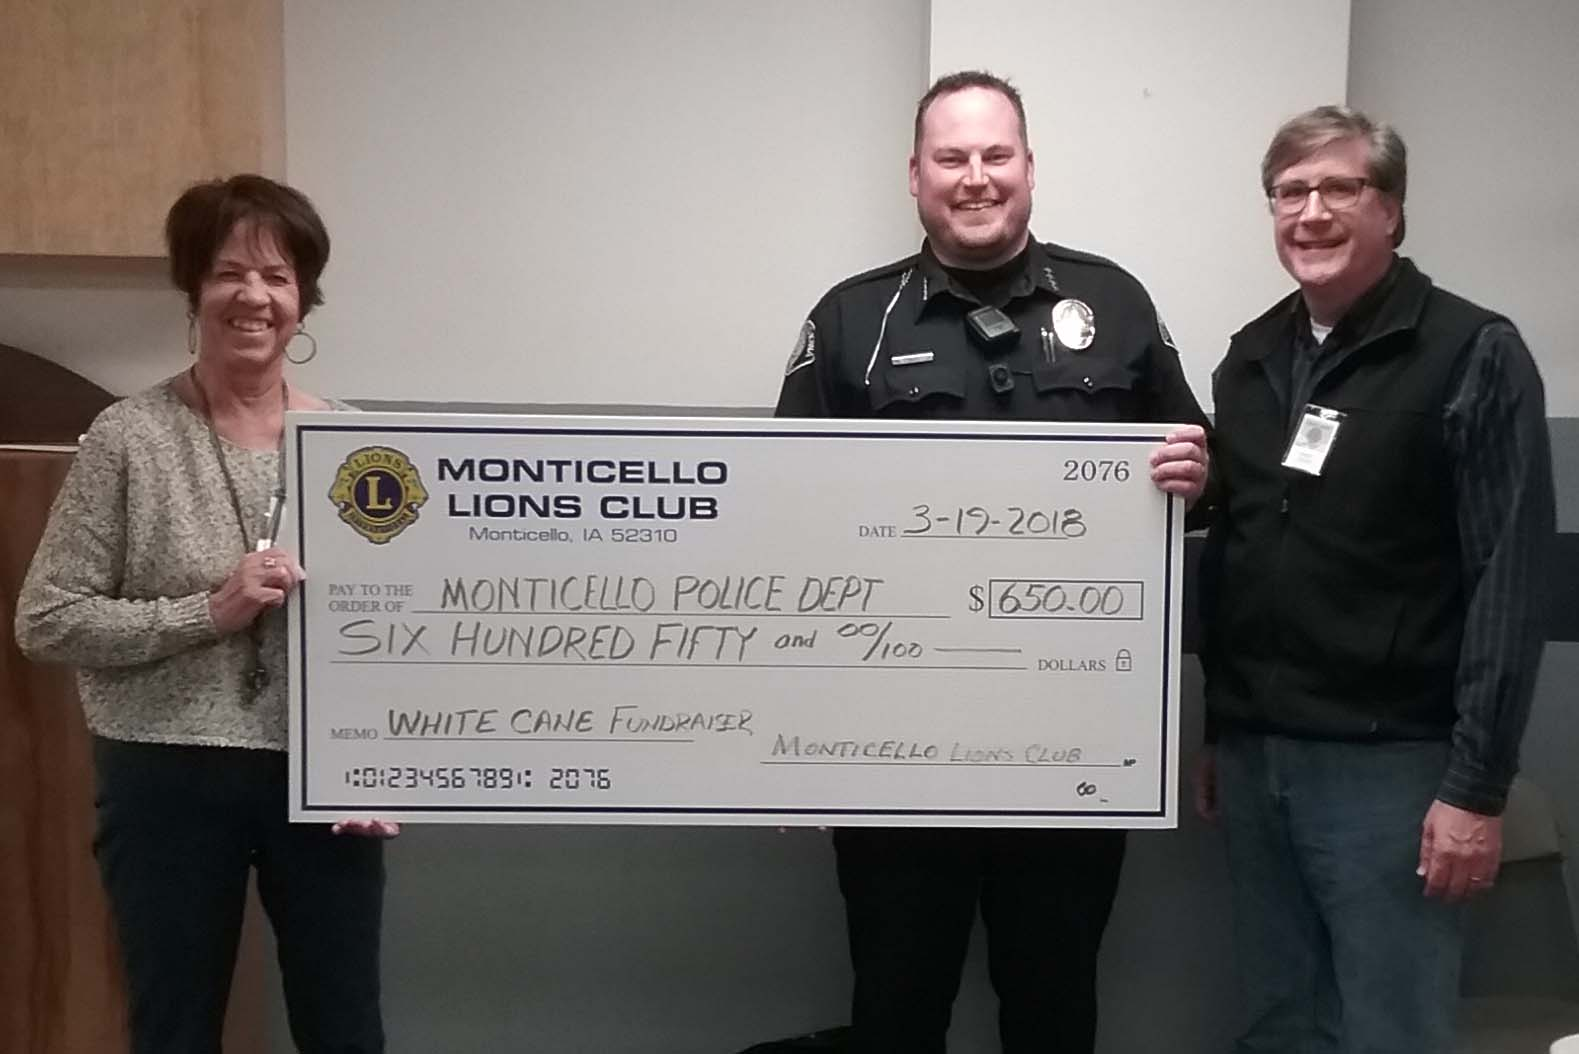 The Monticello Lions Club donated $650 from their White Cane fundraiser to the Monticello Police Department. From left are Astrid Smith, Police Chief Britt Smith and Pastor Wade Reddy. The White Cane fundraiser was organized by Pastor Reddy.